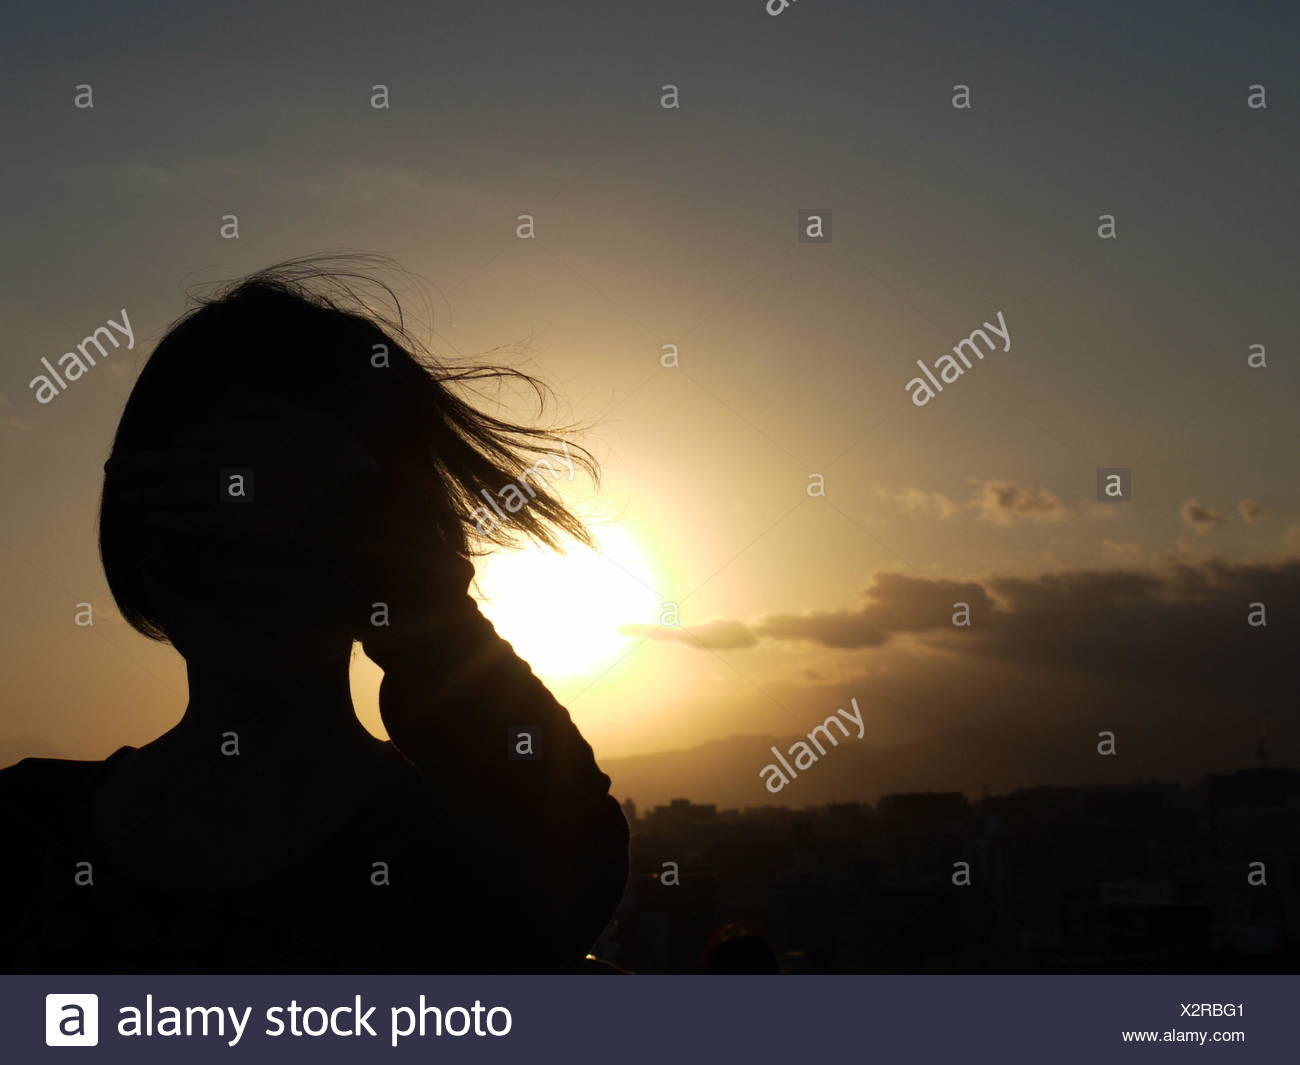 Rear View Of Silhouette Woman Against Sky During Sunset - Stock Image